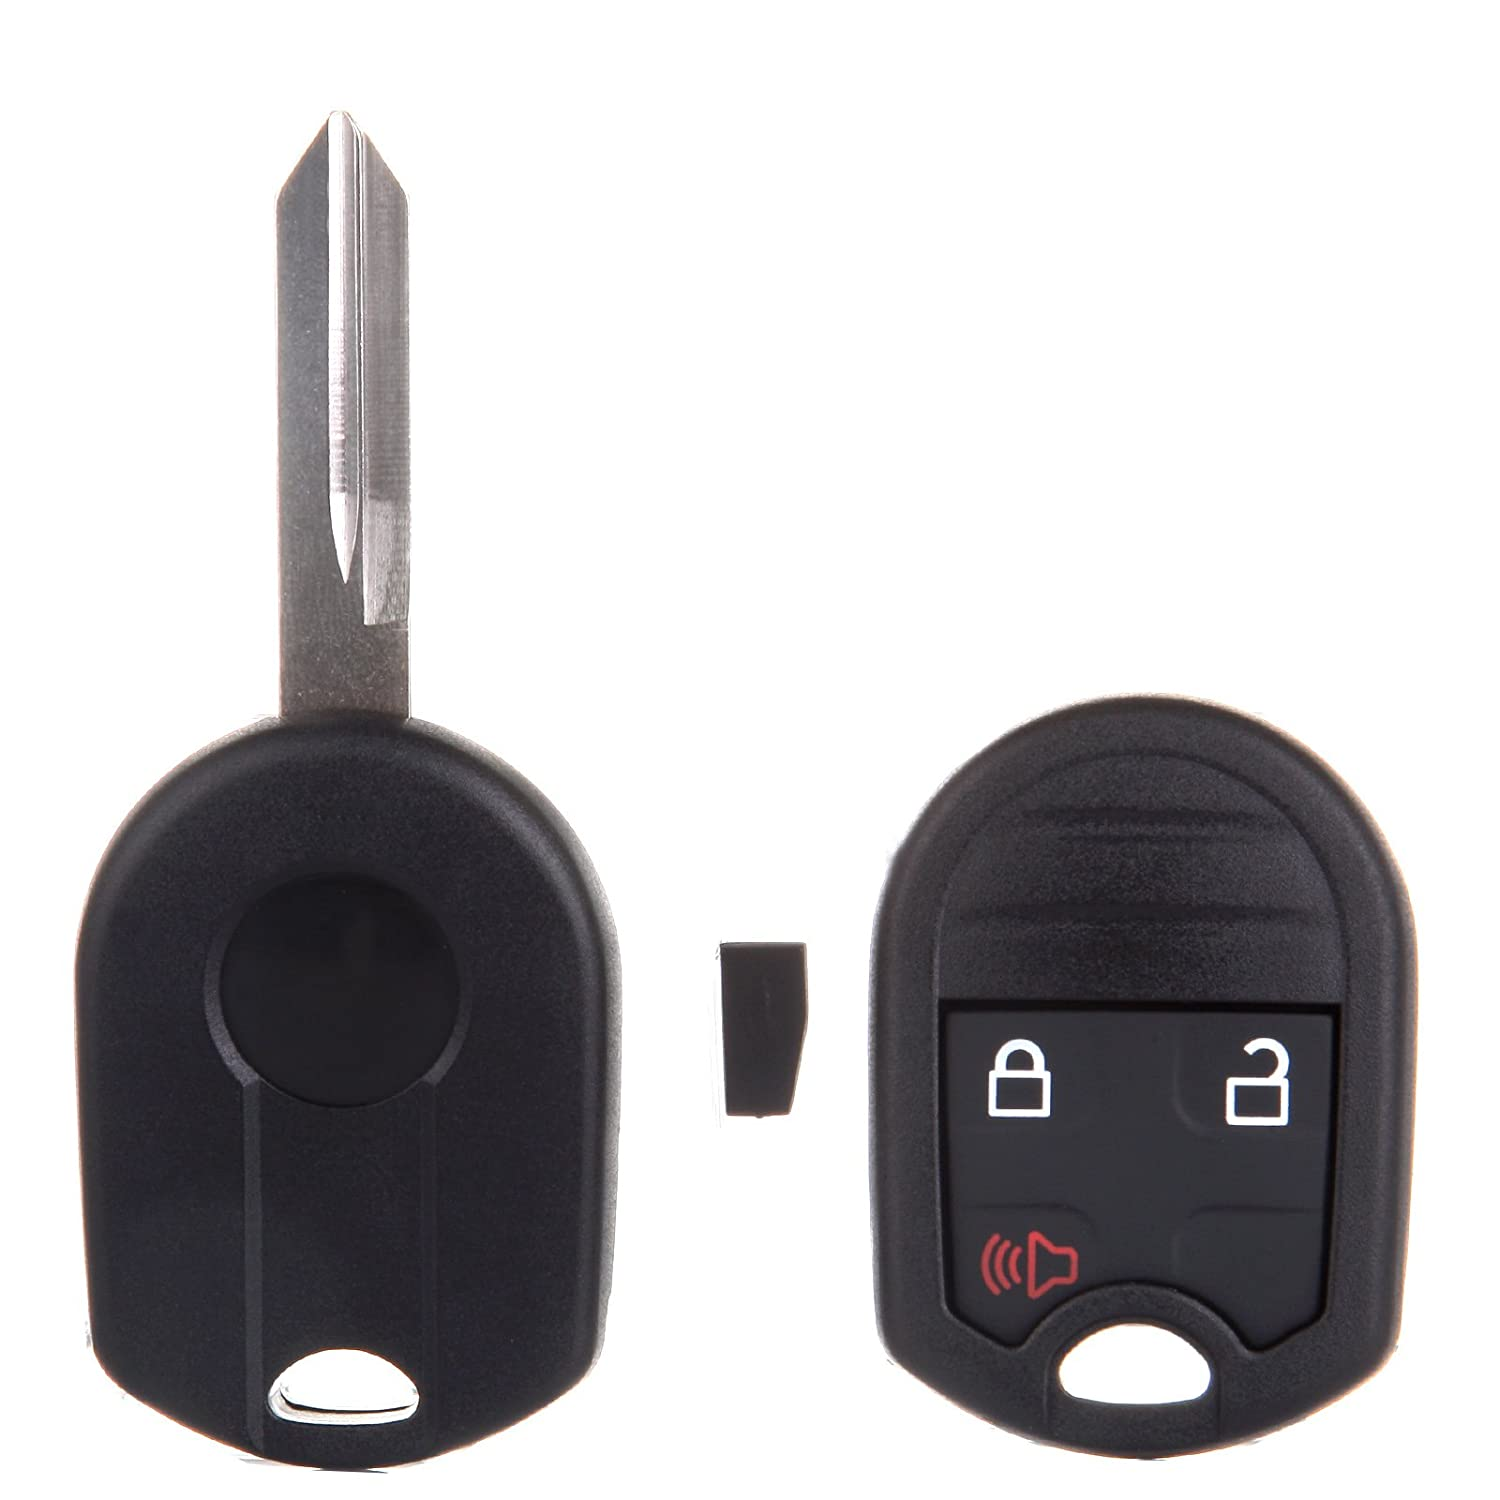 cciyu 2PCS Uncut 3 Buttons Keyless Entry Remote Fob Replacement fit for Ford Ranger Escape Explorer//Lincoln MKZ MKX Mark LT//Mazda Tribute//Mercury Mariner Mountaineer CWTWB1U793G